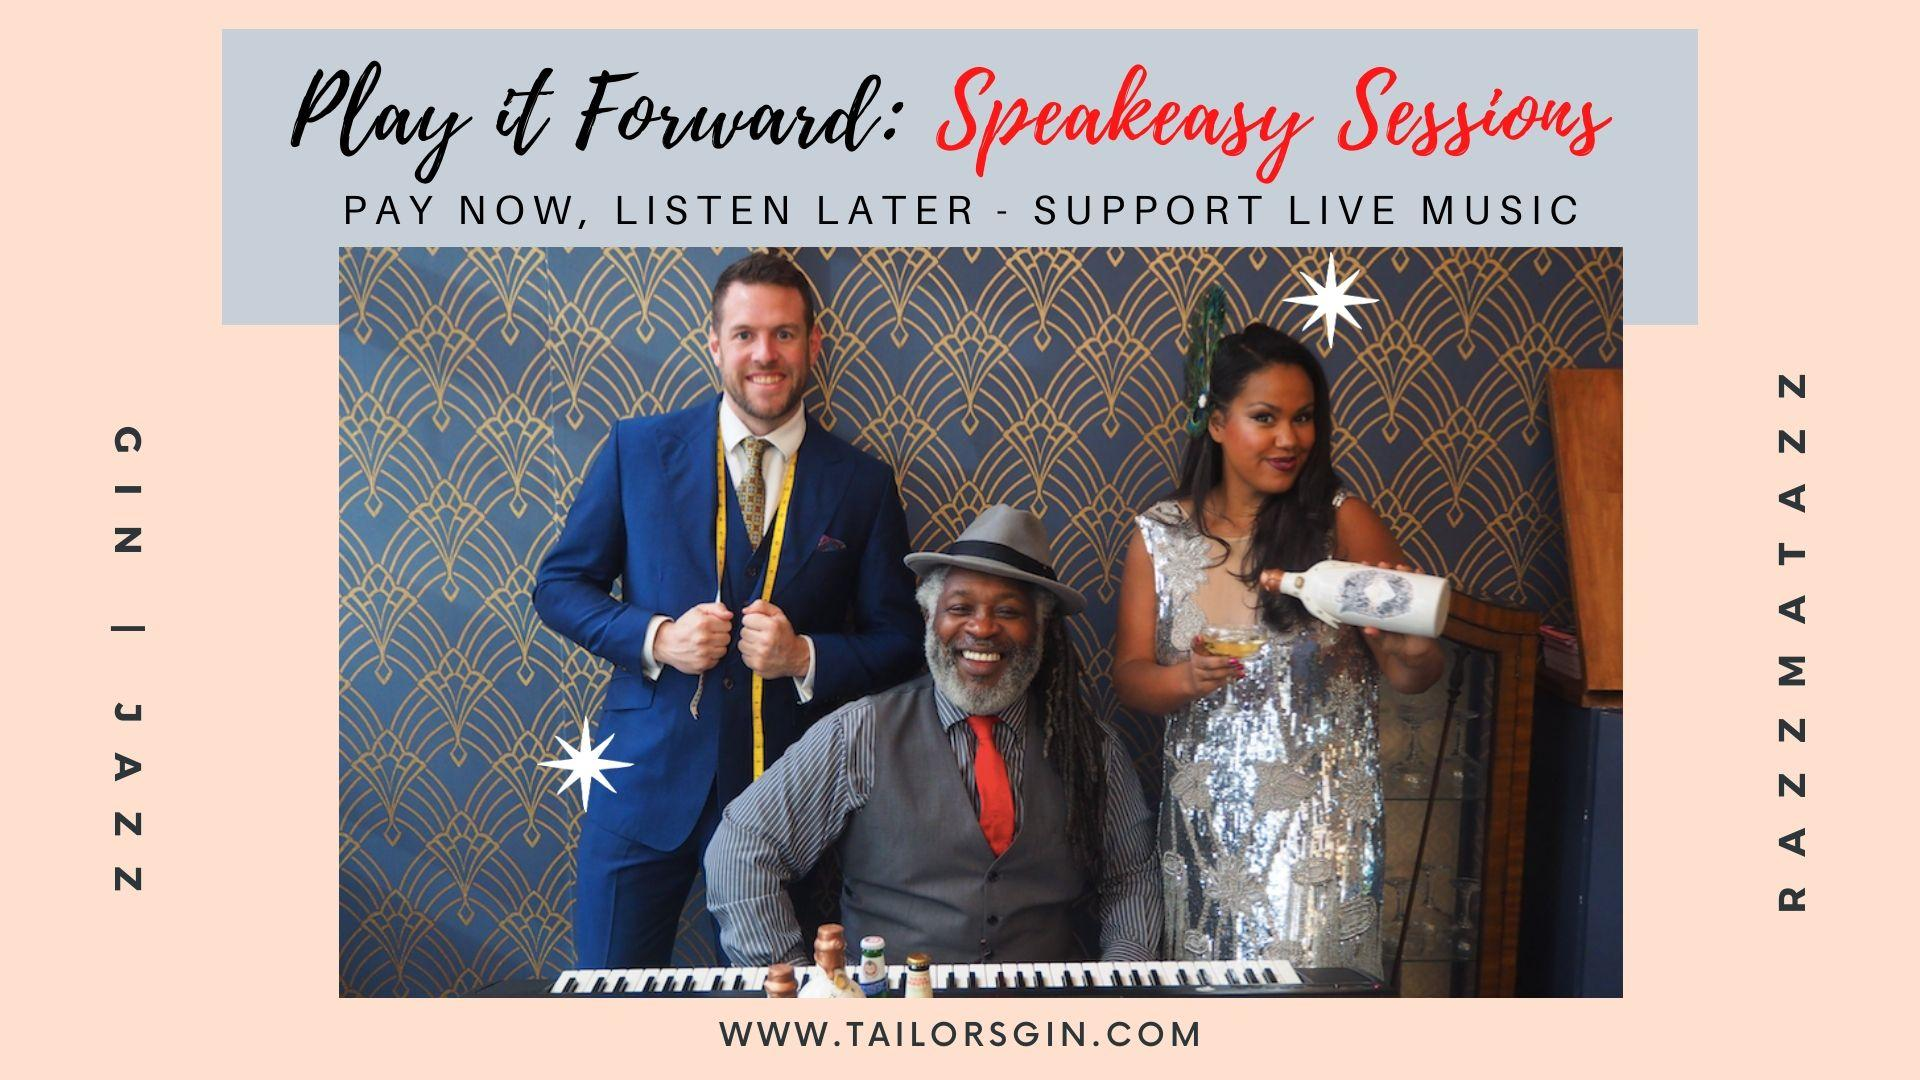 PLAY it FORWARD: Speakeasy Sessions